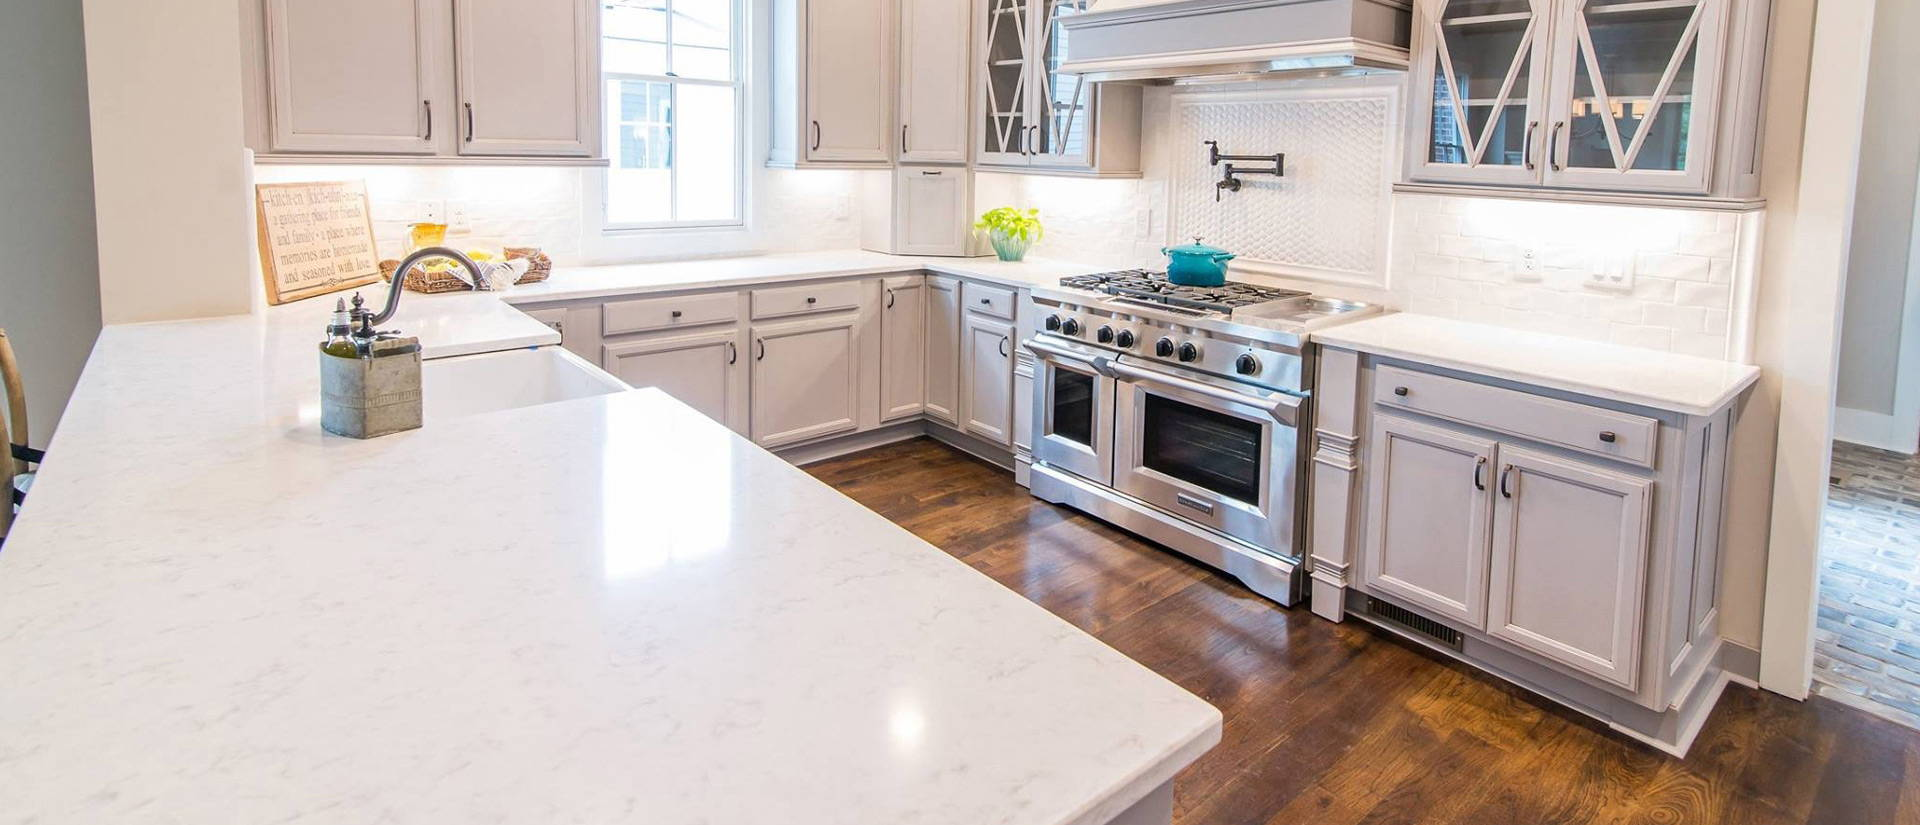 Cashmere Carrara Quartz Countertop Kitchen Cabinets